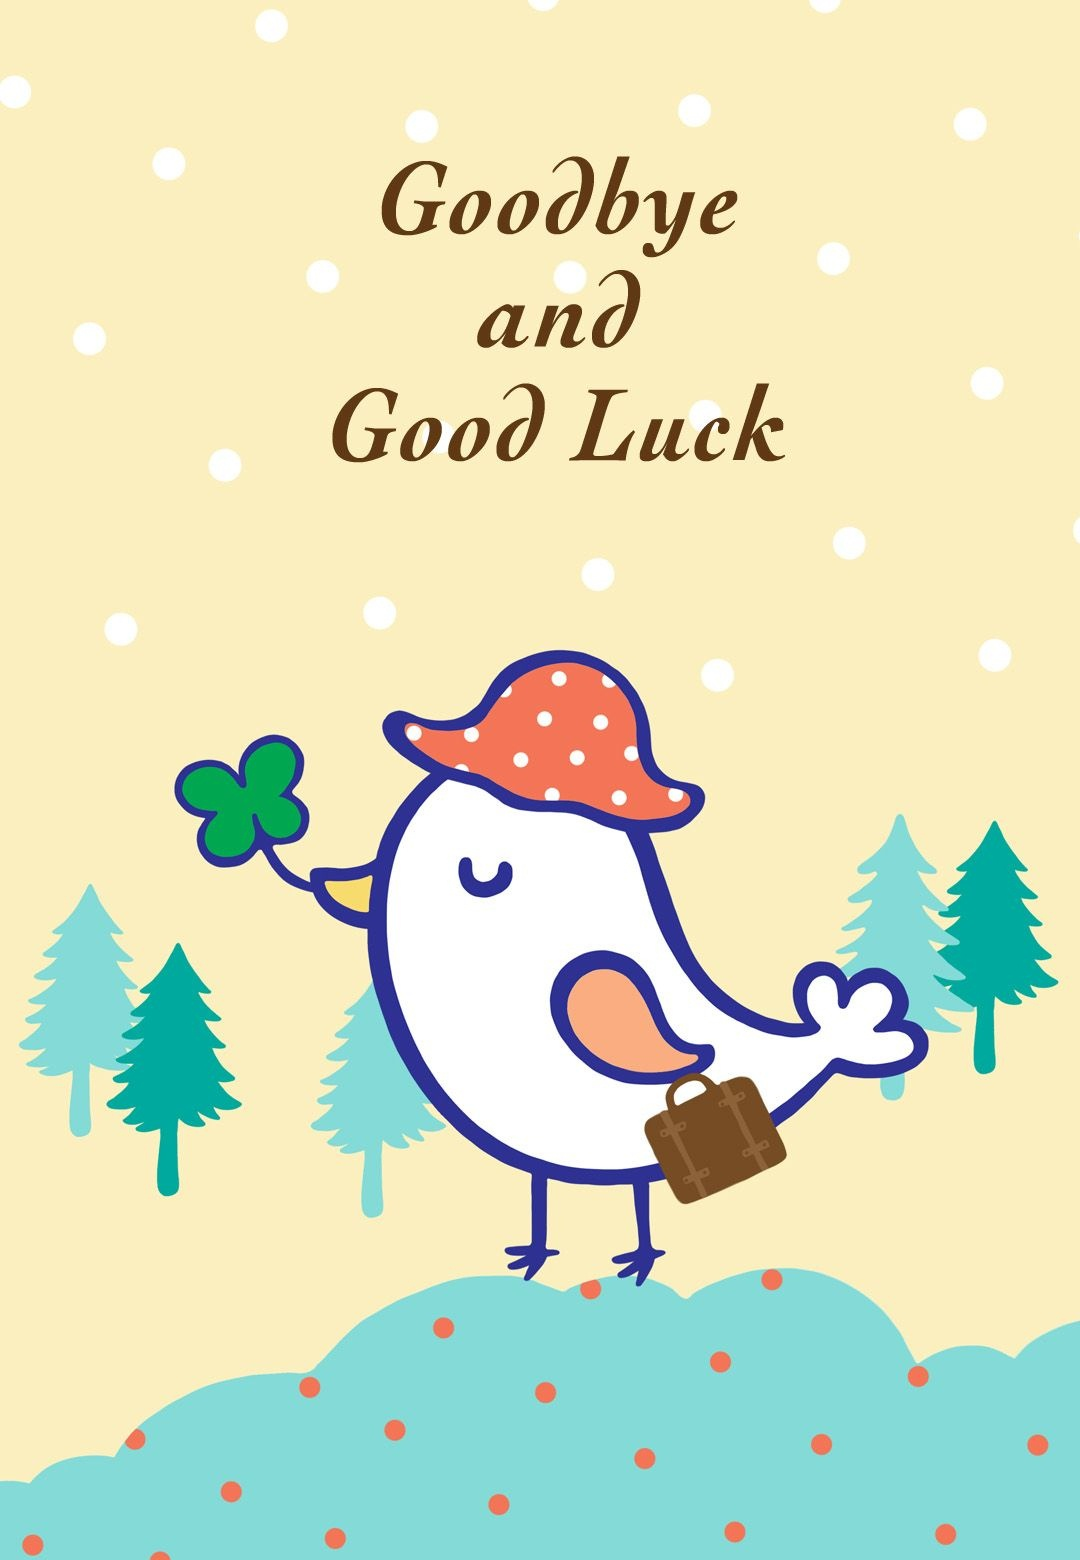 Free Printable Goodbye And Good Luck Greeting Card | Littlestar - Free Printable Farewell Card For Coworker